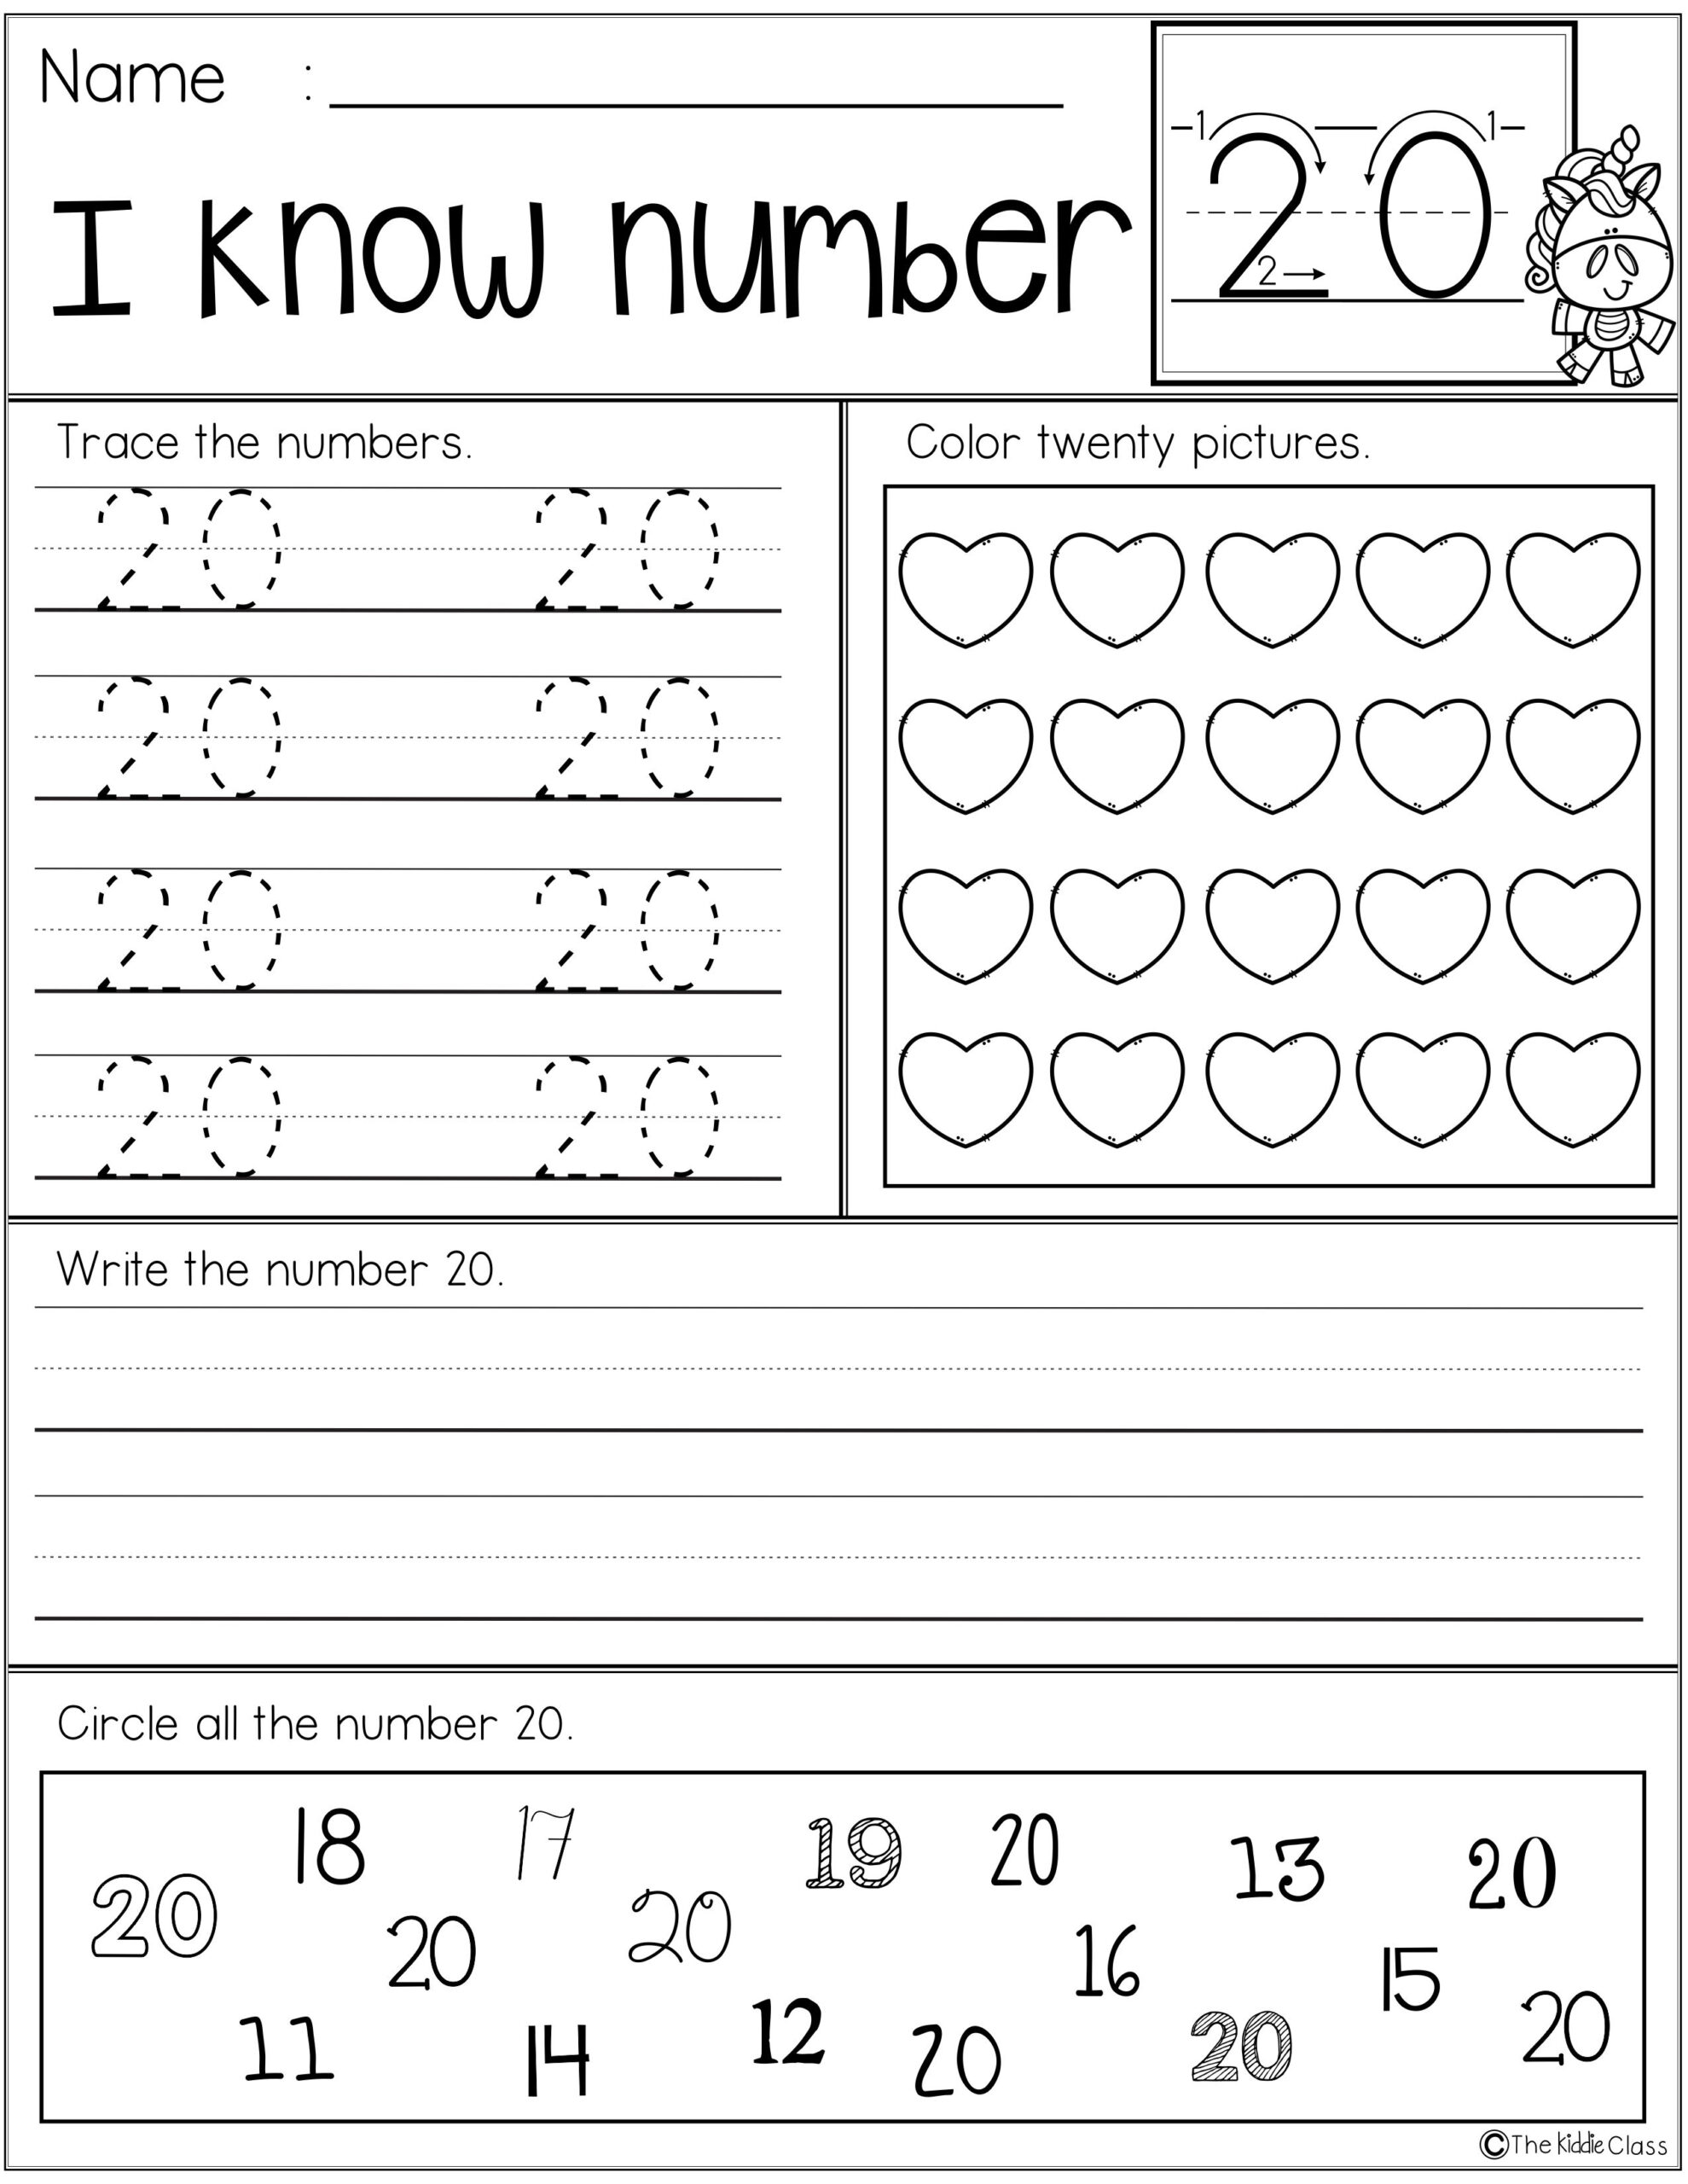 Free Number Practice Printables | Science Lessons Elementary in Tracing Name Layla